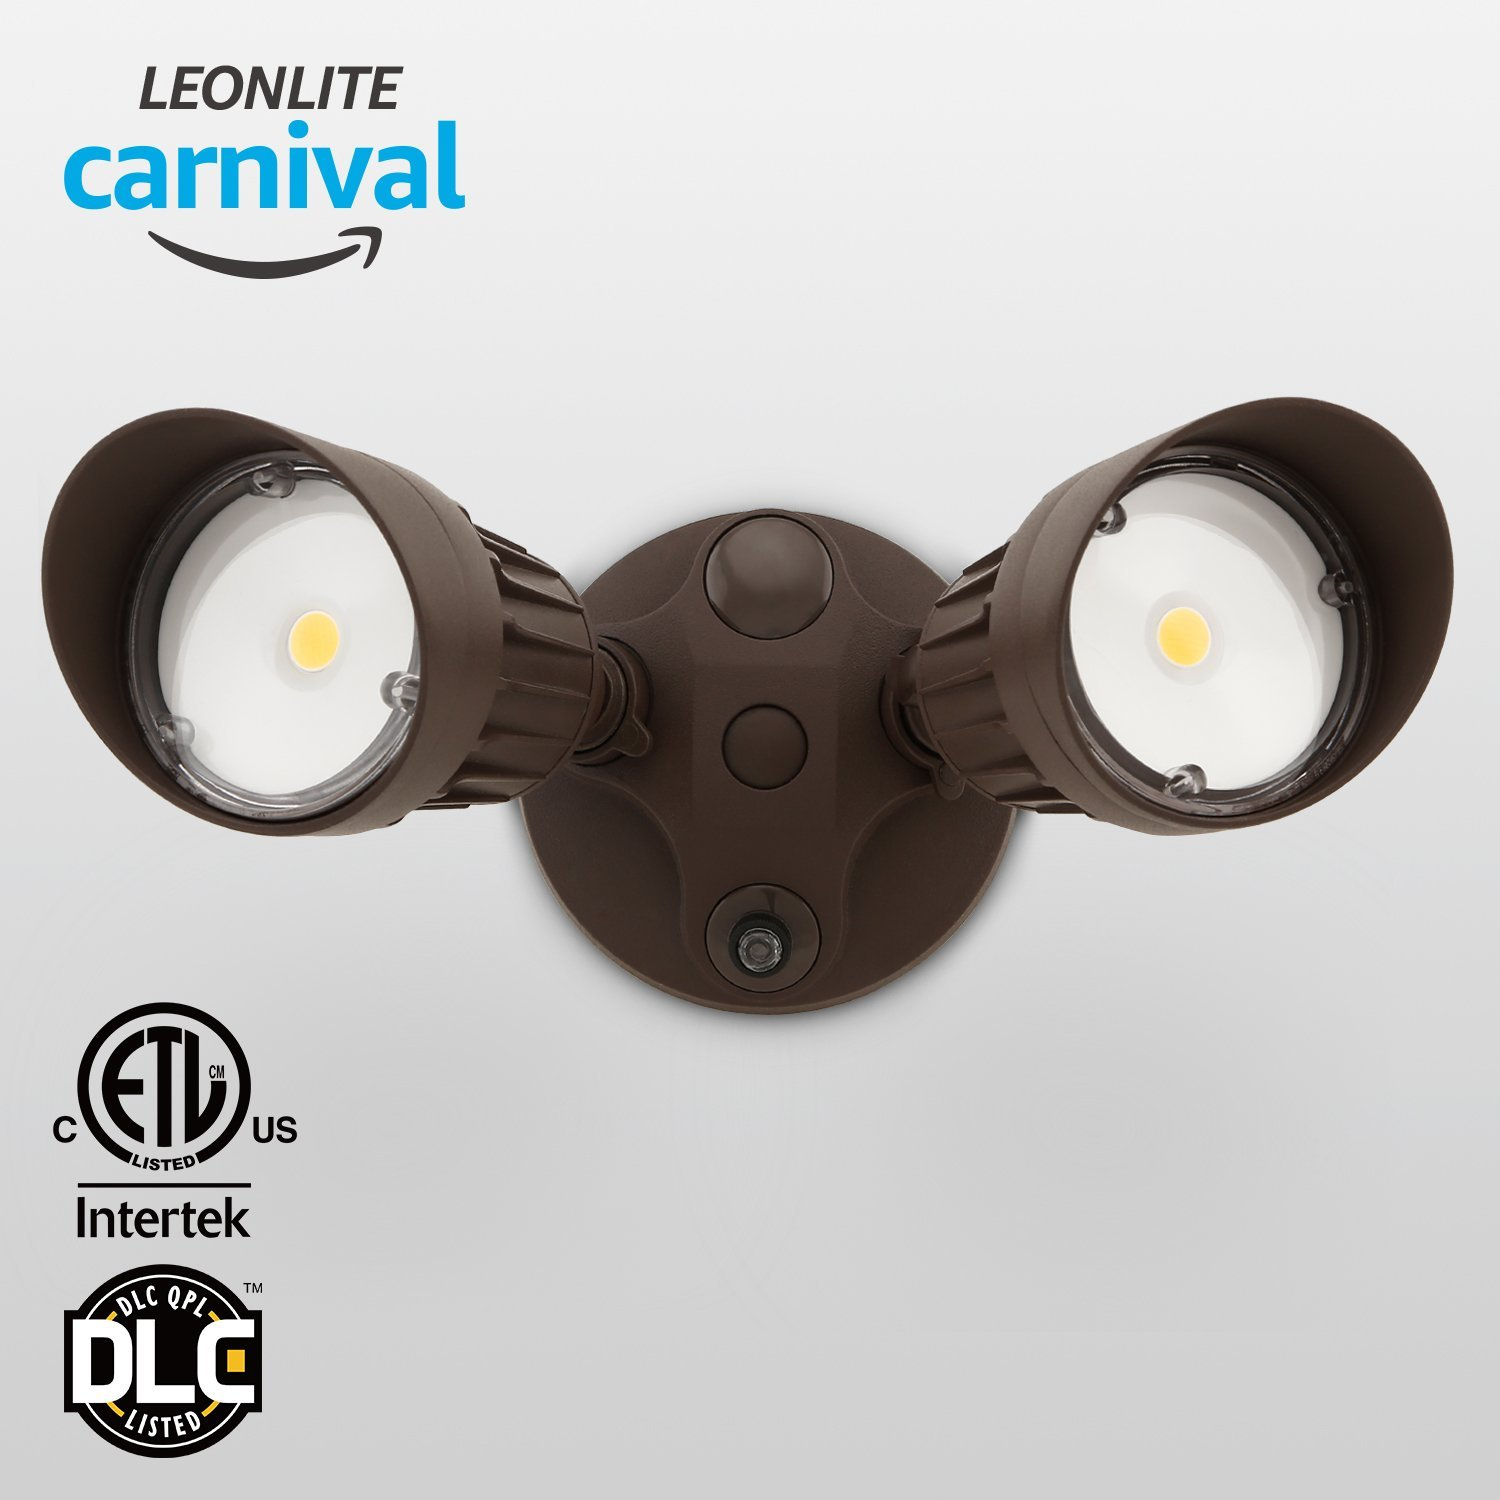 LEONLITE 20W Two-head LED Outdoor Security Light, Dusk to Dawn Photocell, 1800lm LED Flood Light for Yard, Garage, Porch, Entryways, Porch, 3000K Warm White, Bronze